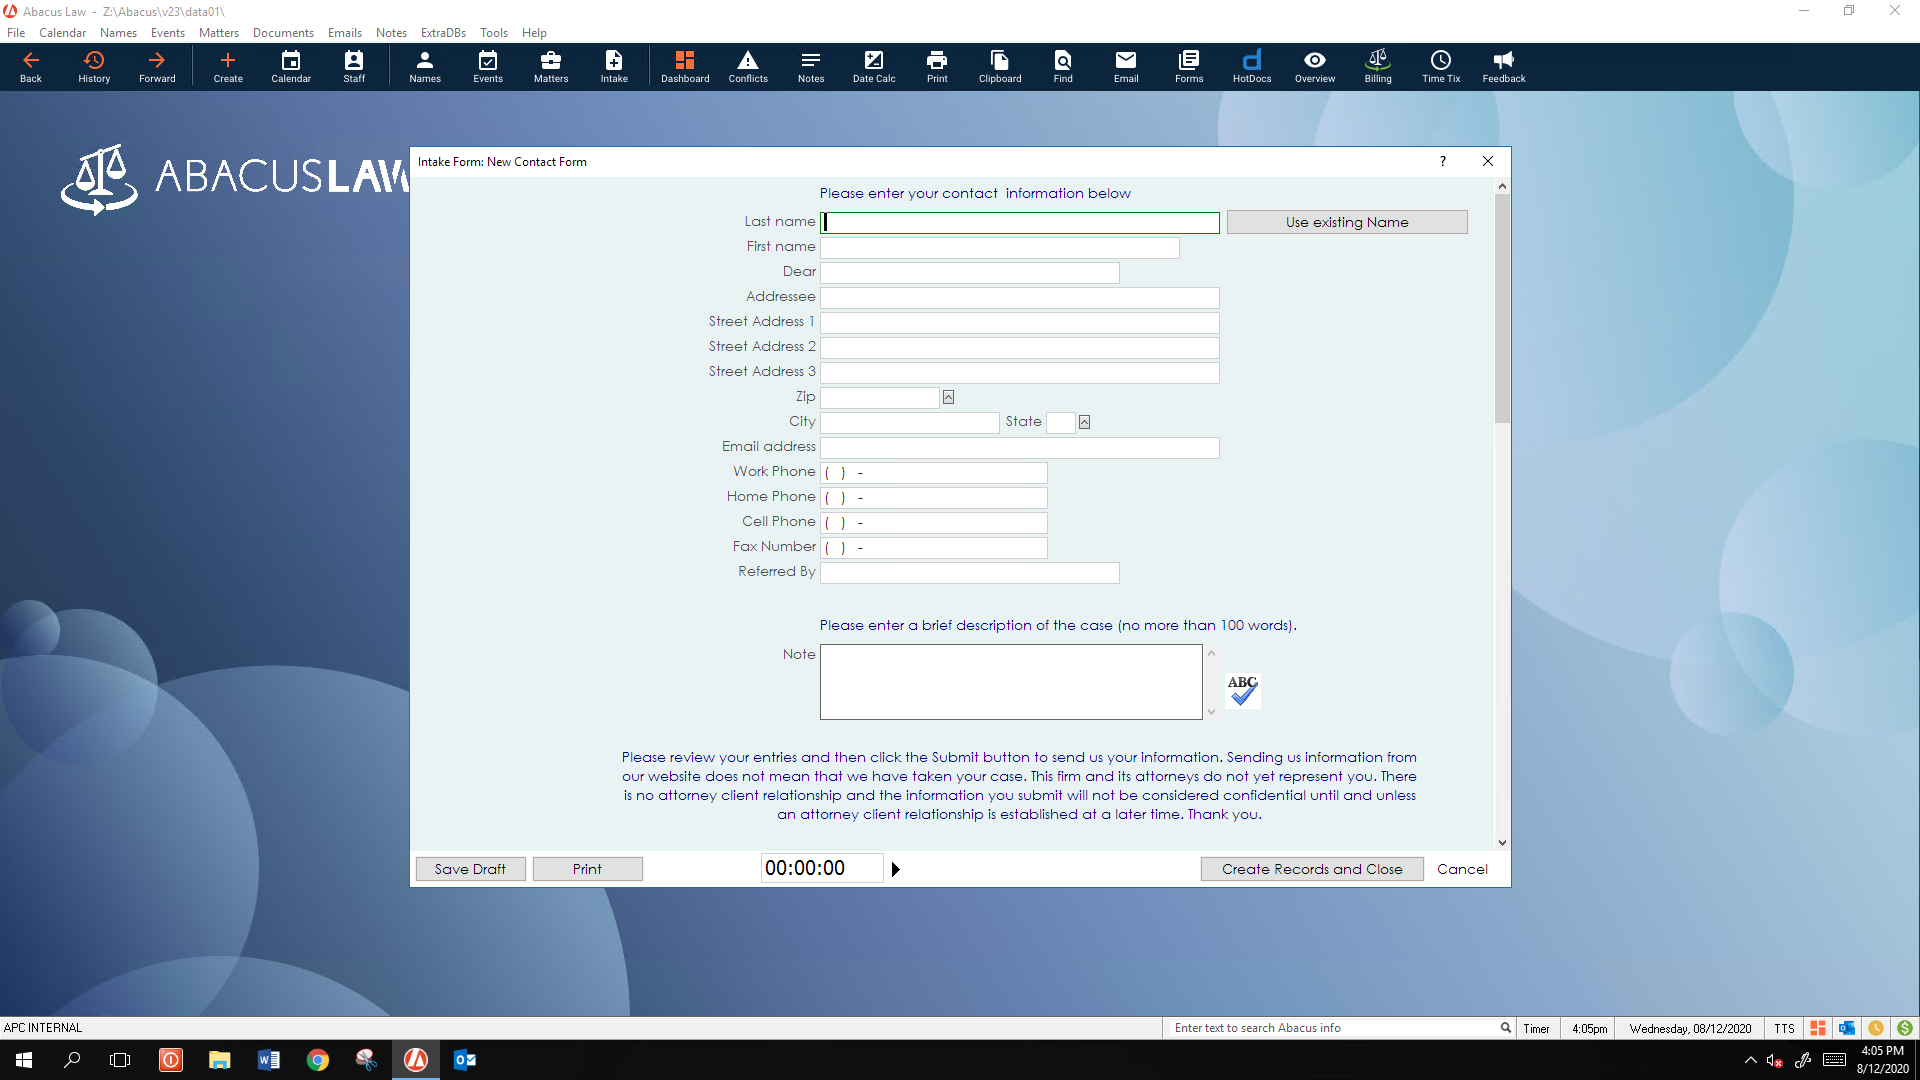 AbacusLaw Software - Client Intake